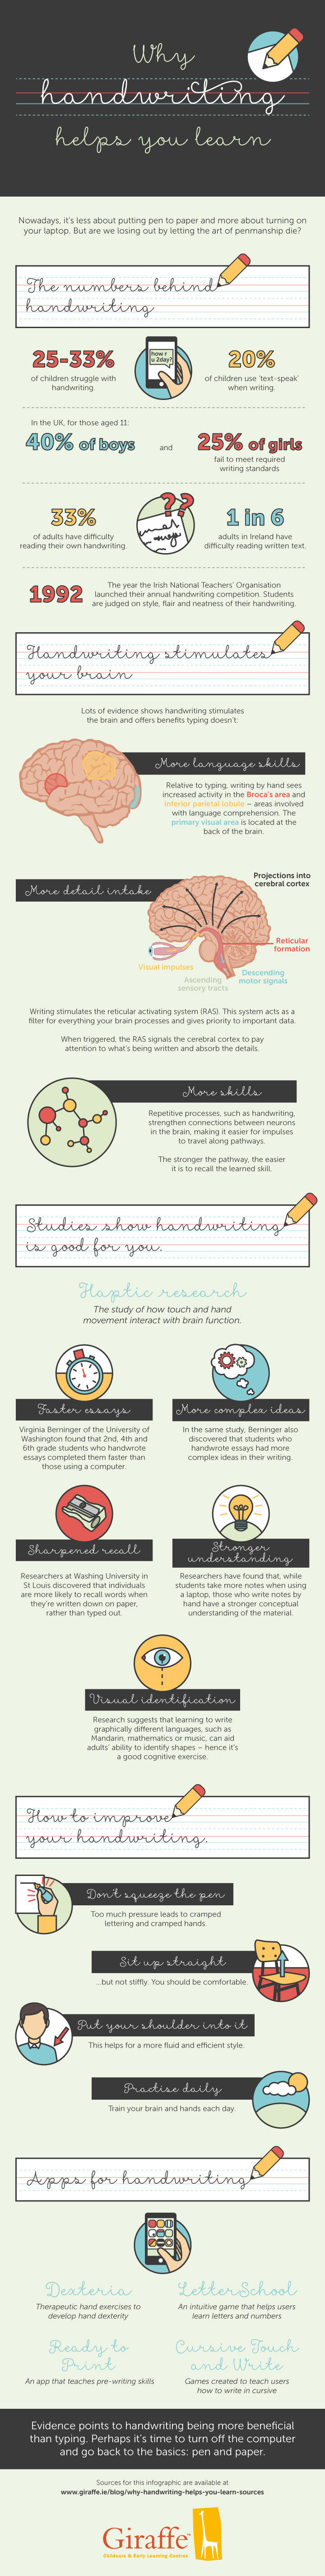 Infographic: Why Handwriting Helps You Learn